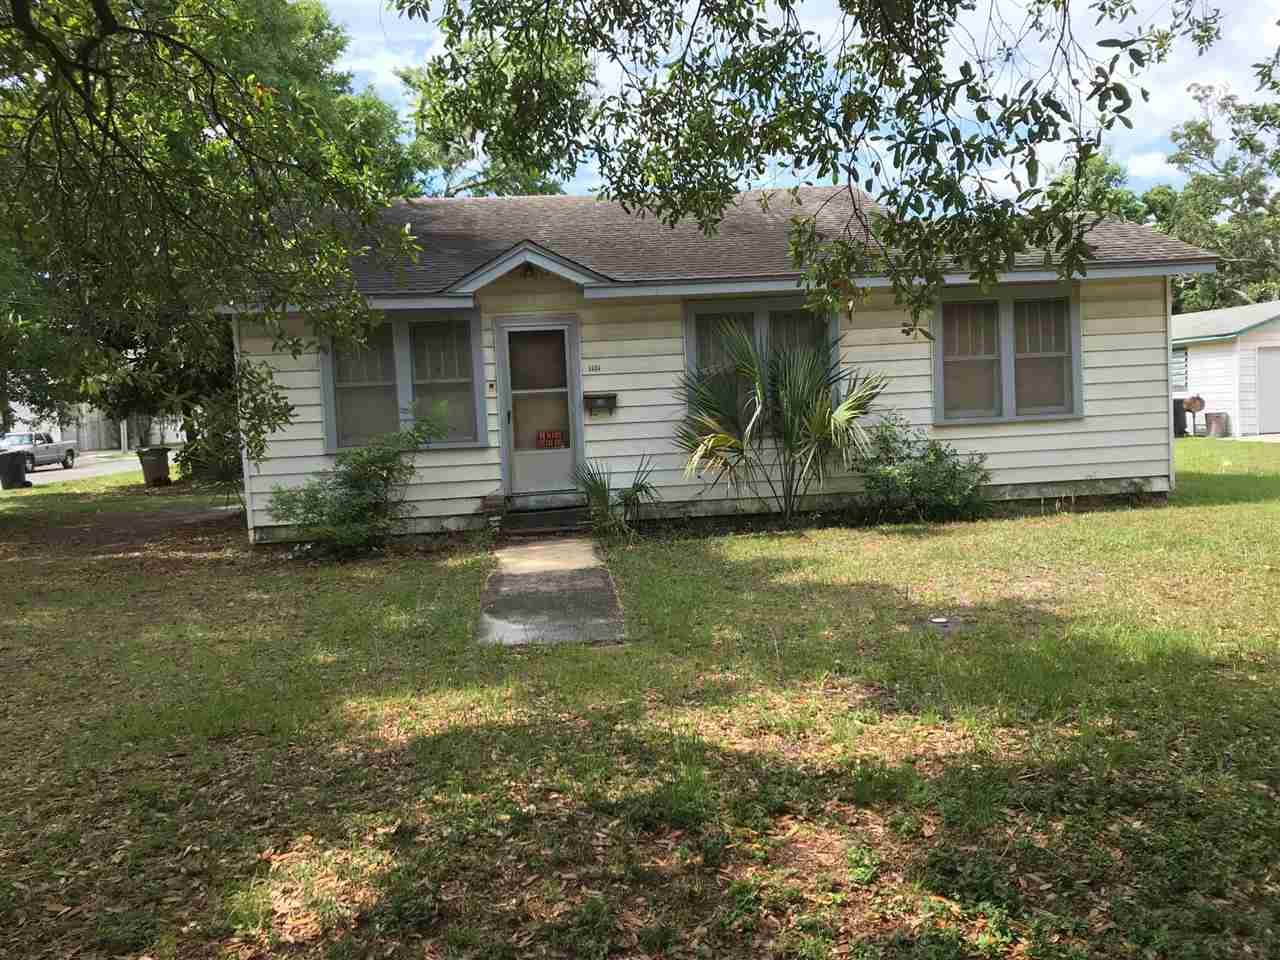 This small solid cottage has tongue and groove ceilings and floors in main living area. It has been owned by a well known shrimp family for 33 years, and rented to same tenant for 20 years.   Would be good rental Or tear down to develop land.  Land is 90 ' on Gimble and 125'  on S. D Street.  The land value justifies the price with .258 acres (11,238 sq. ft.) room for 3 lots/homes for developing.  The roof was replaced after Ivan in 2005.  This home needs some work such as new windows, kitchen upgrades and new window A/C units.   The tenant is removing the 2 window units so new ones need to be added.  There is a nice attached storage.  It is located two blocks from Joe Pattis and four blocks from the water. Only minutes walk away from the Maritime Park and the heart of downtown, this location is ideal for somebody looking for the downtown experience for a low price.  Call Sharon for easy show 341-1648 or 477-7050.  Showings 1-5:30pm.M-F.